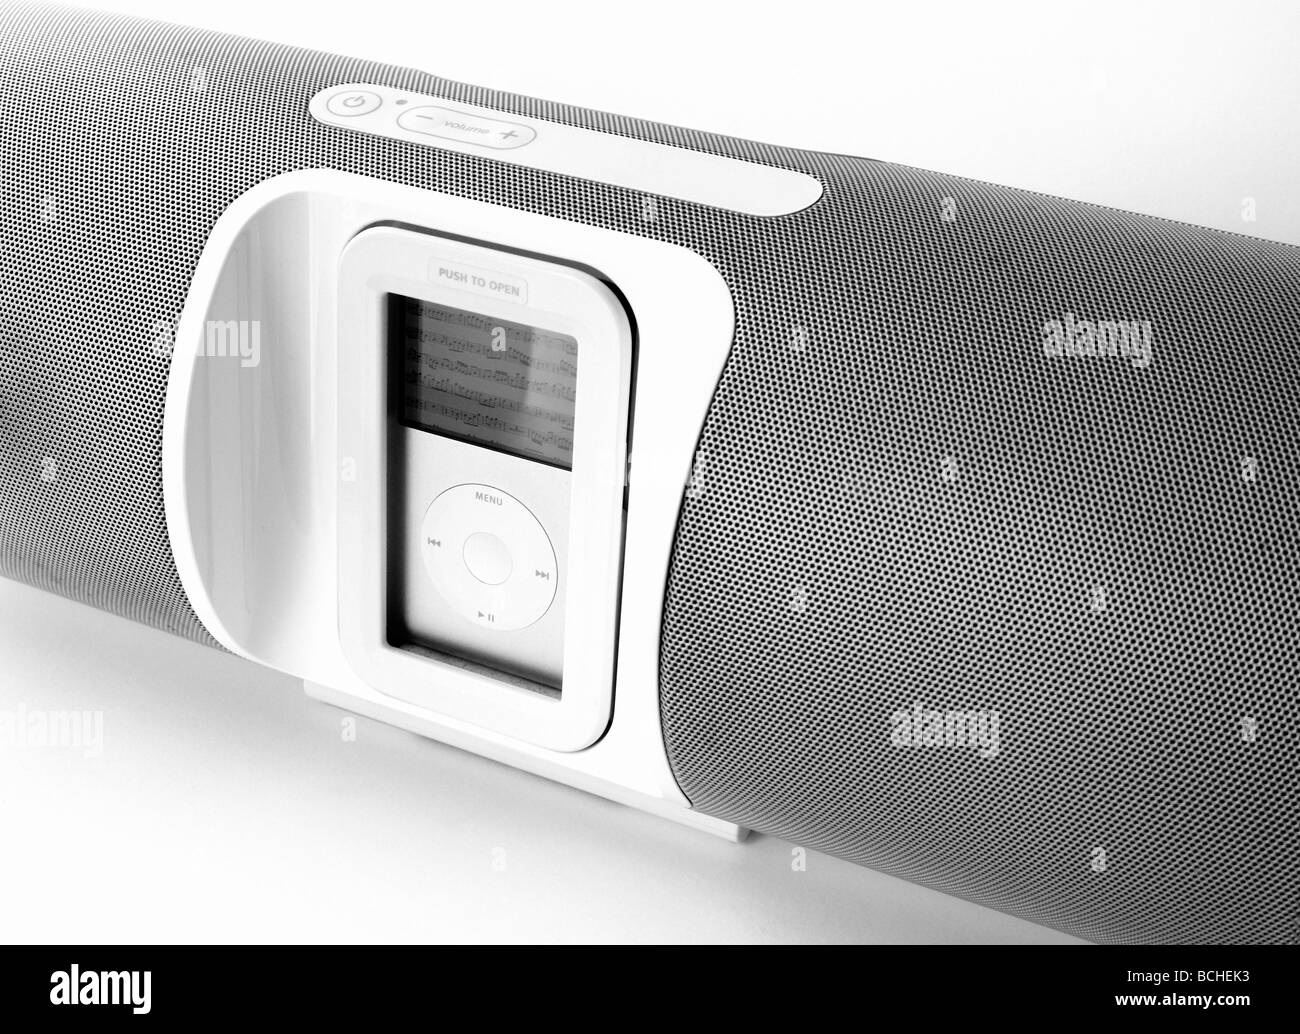 Ipod docking station stereo - Stock Image